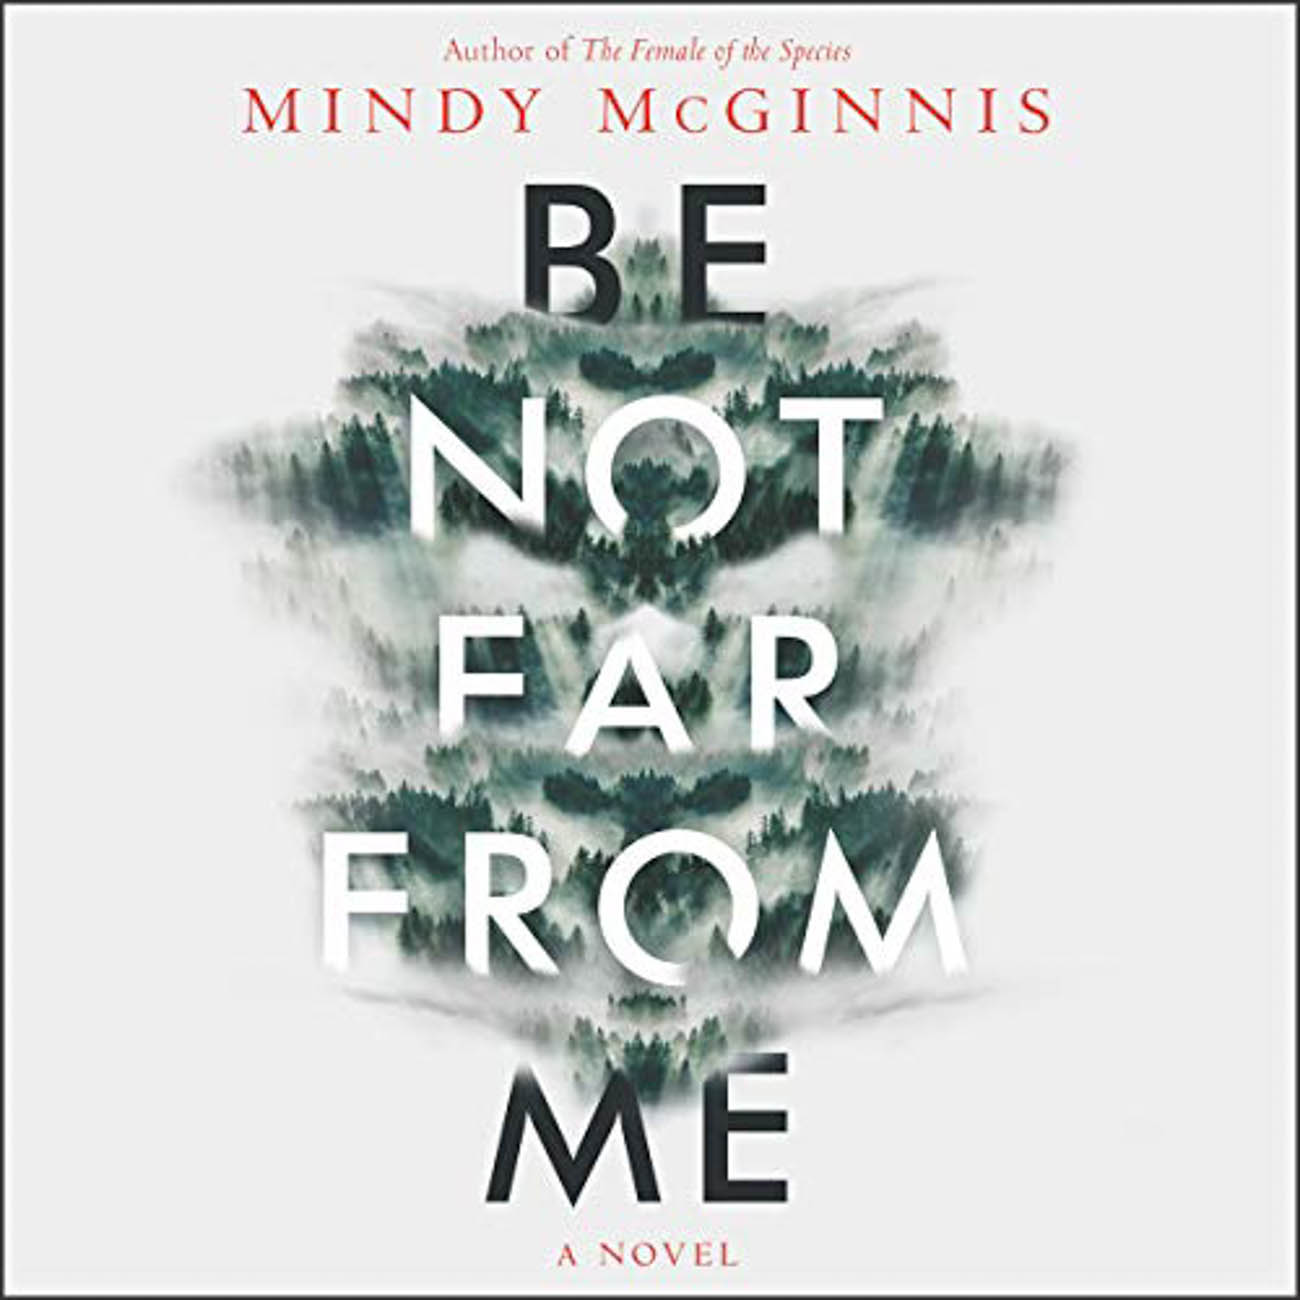 Loveland writer Mindy McGinnis is an Edgar Award winner. She has written multiple novels in the post-apocalyptic, historical, thriller, contemporary, mystery, and fantasy genres. Nine of them are available as audiobooks right this second. / Image courtesy of Audible // Published: 3.23.20